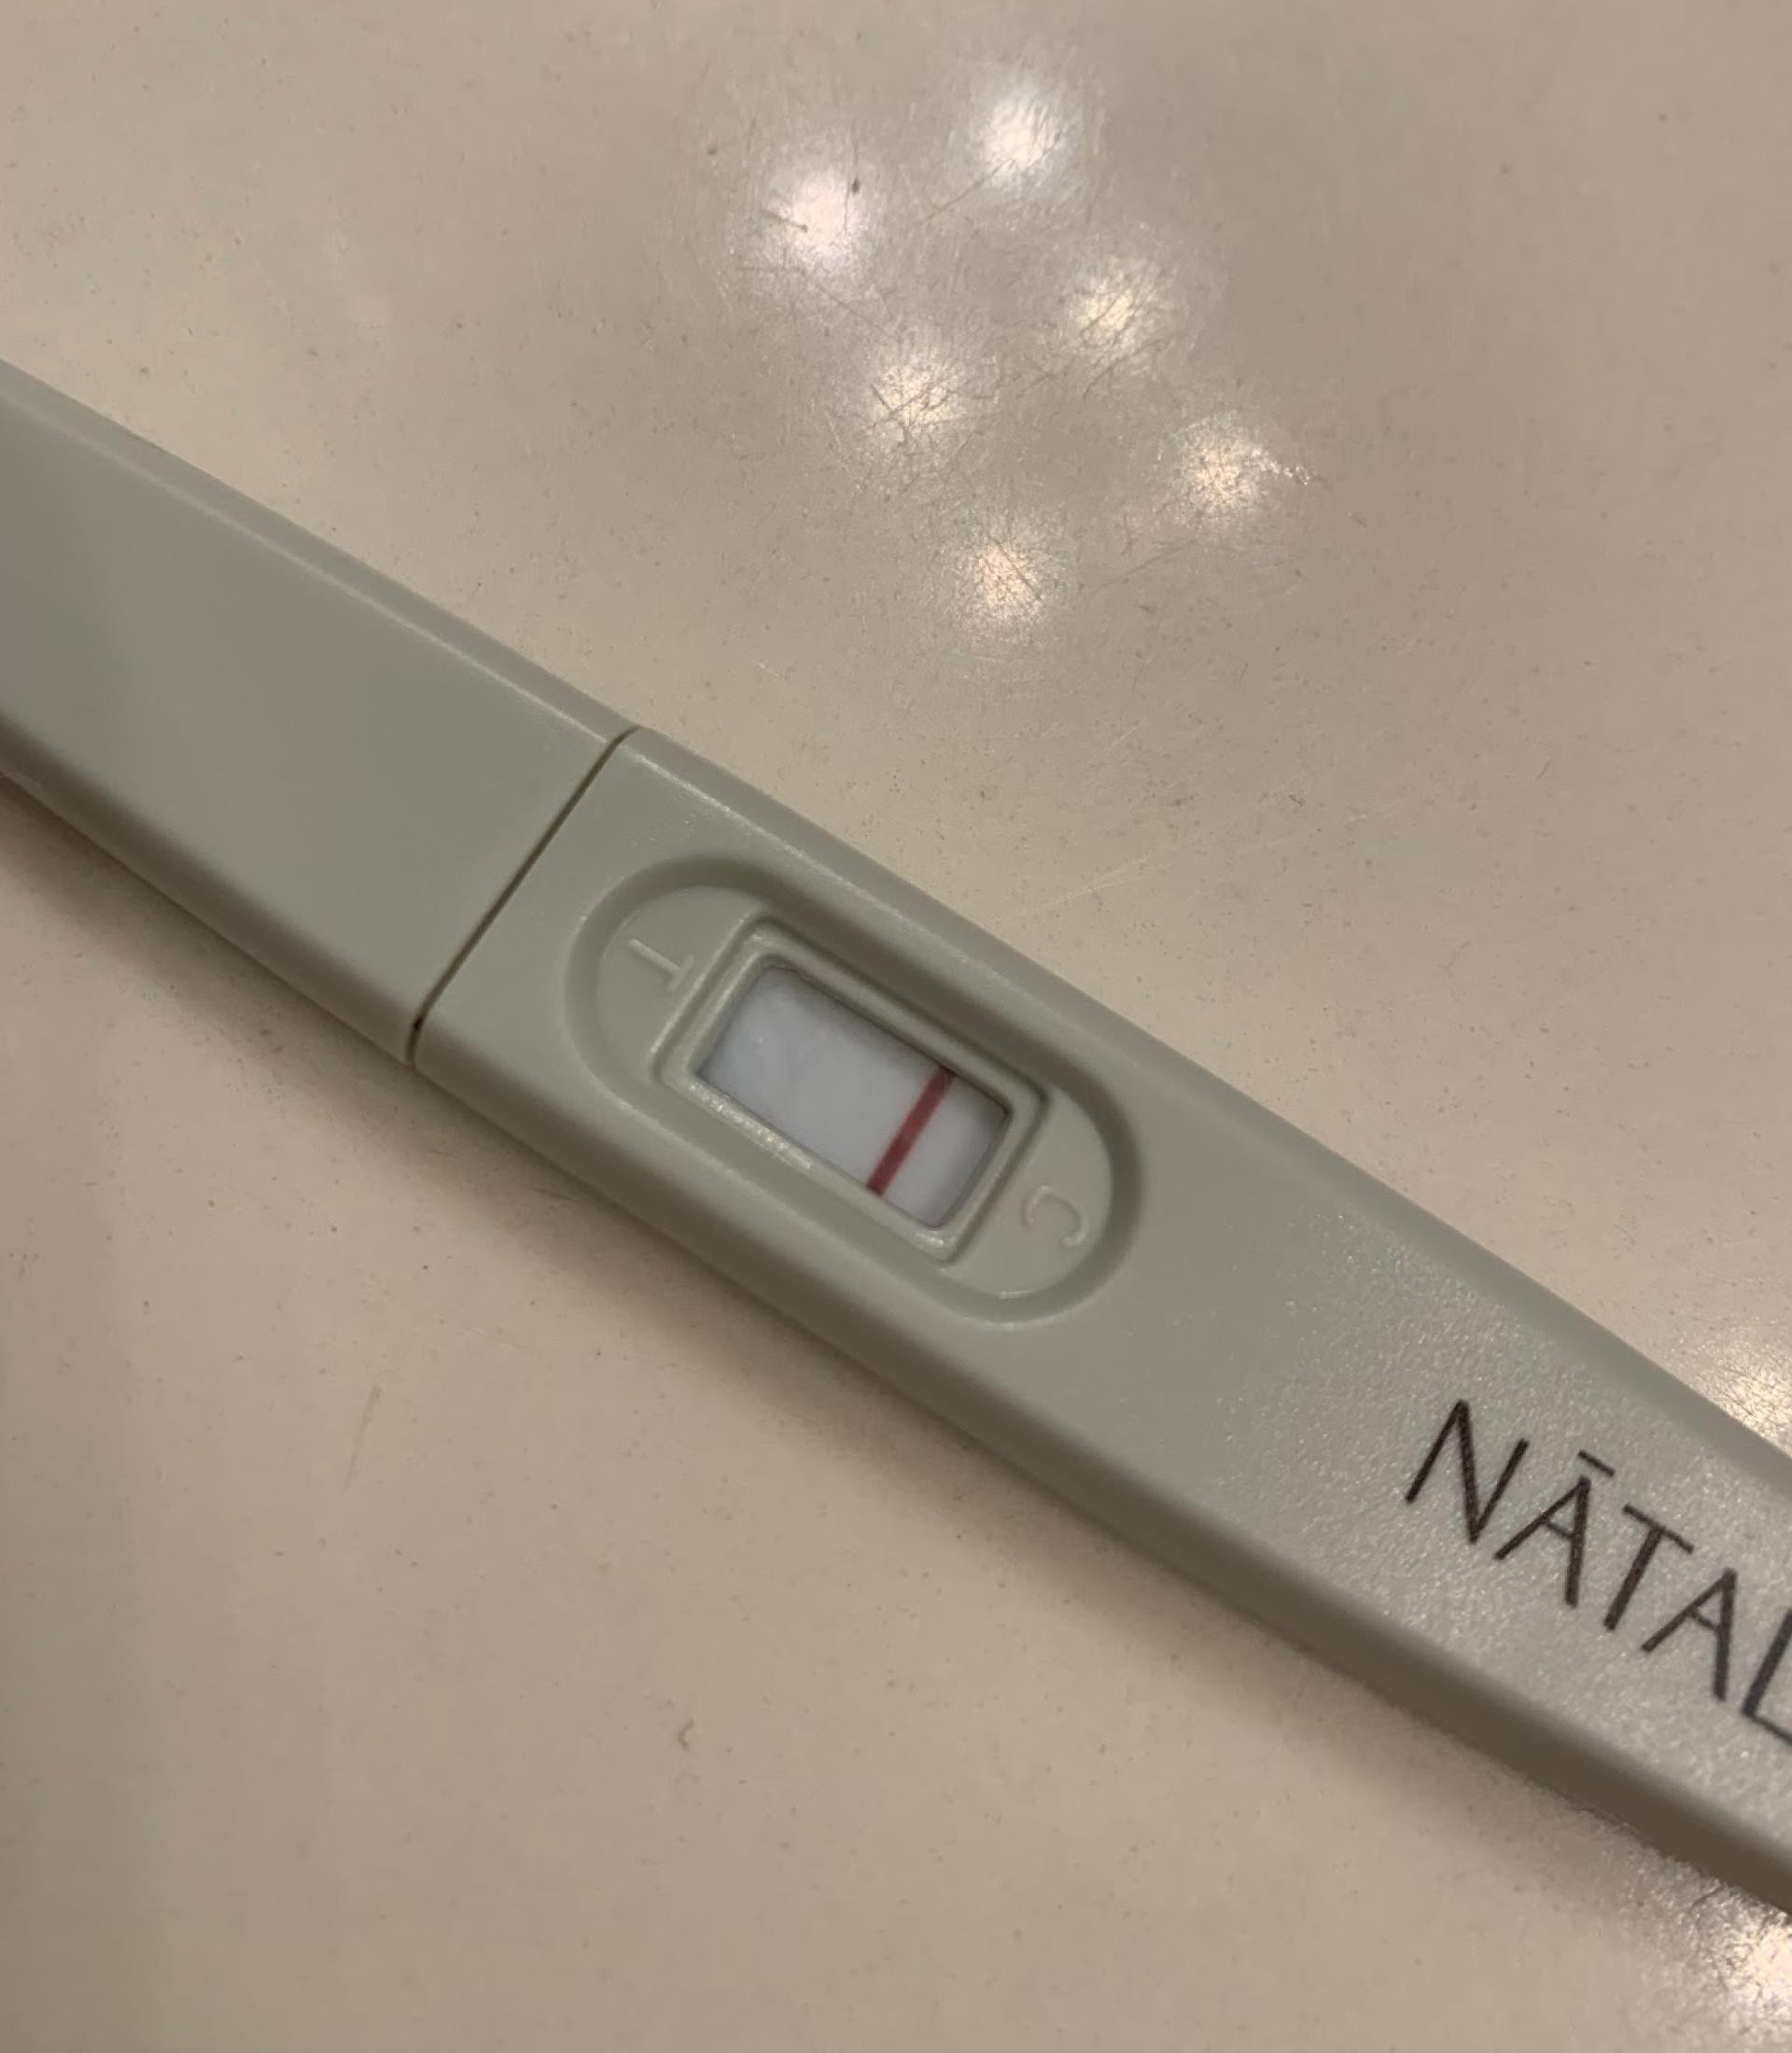 How Early Can I Take A Pregnancy Test By Natalist Jun 2020